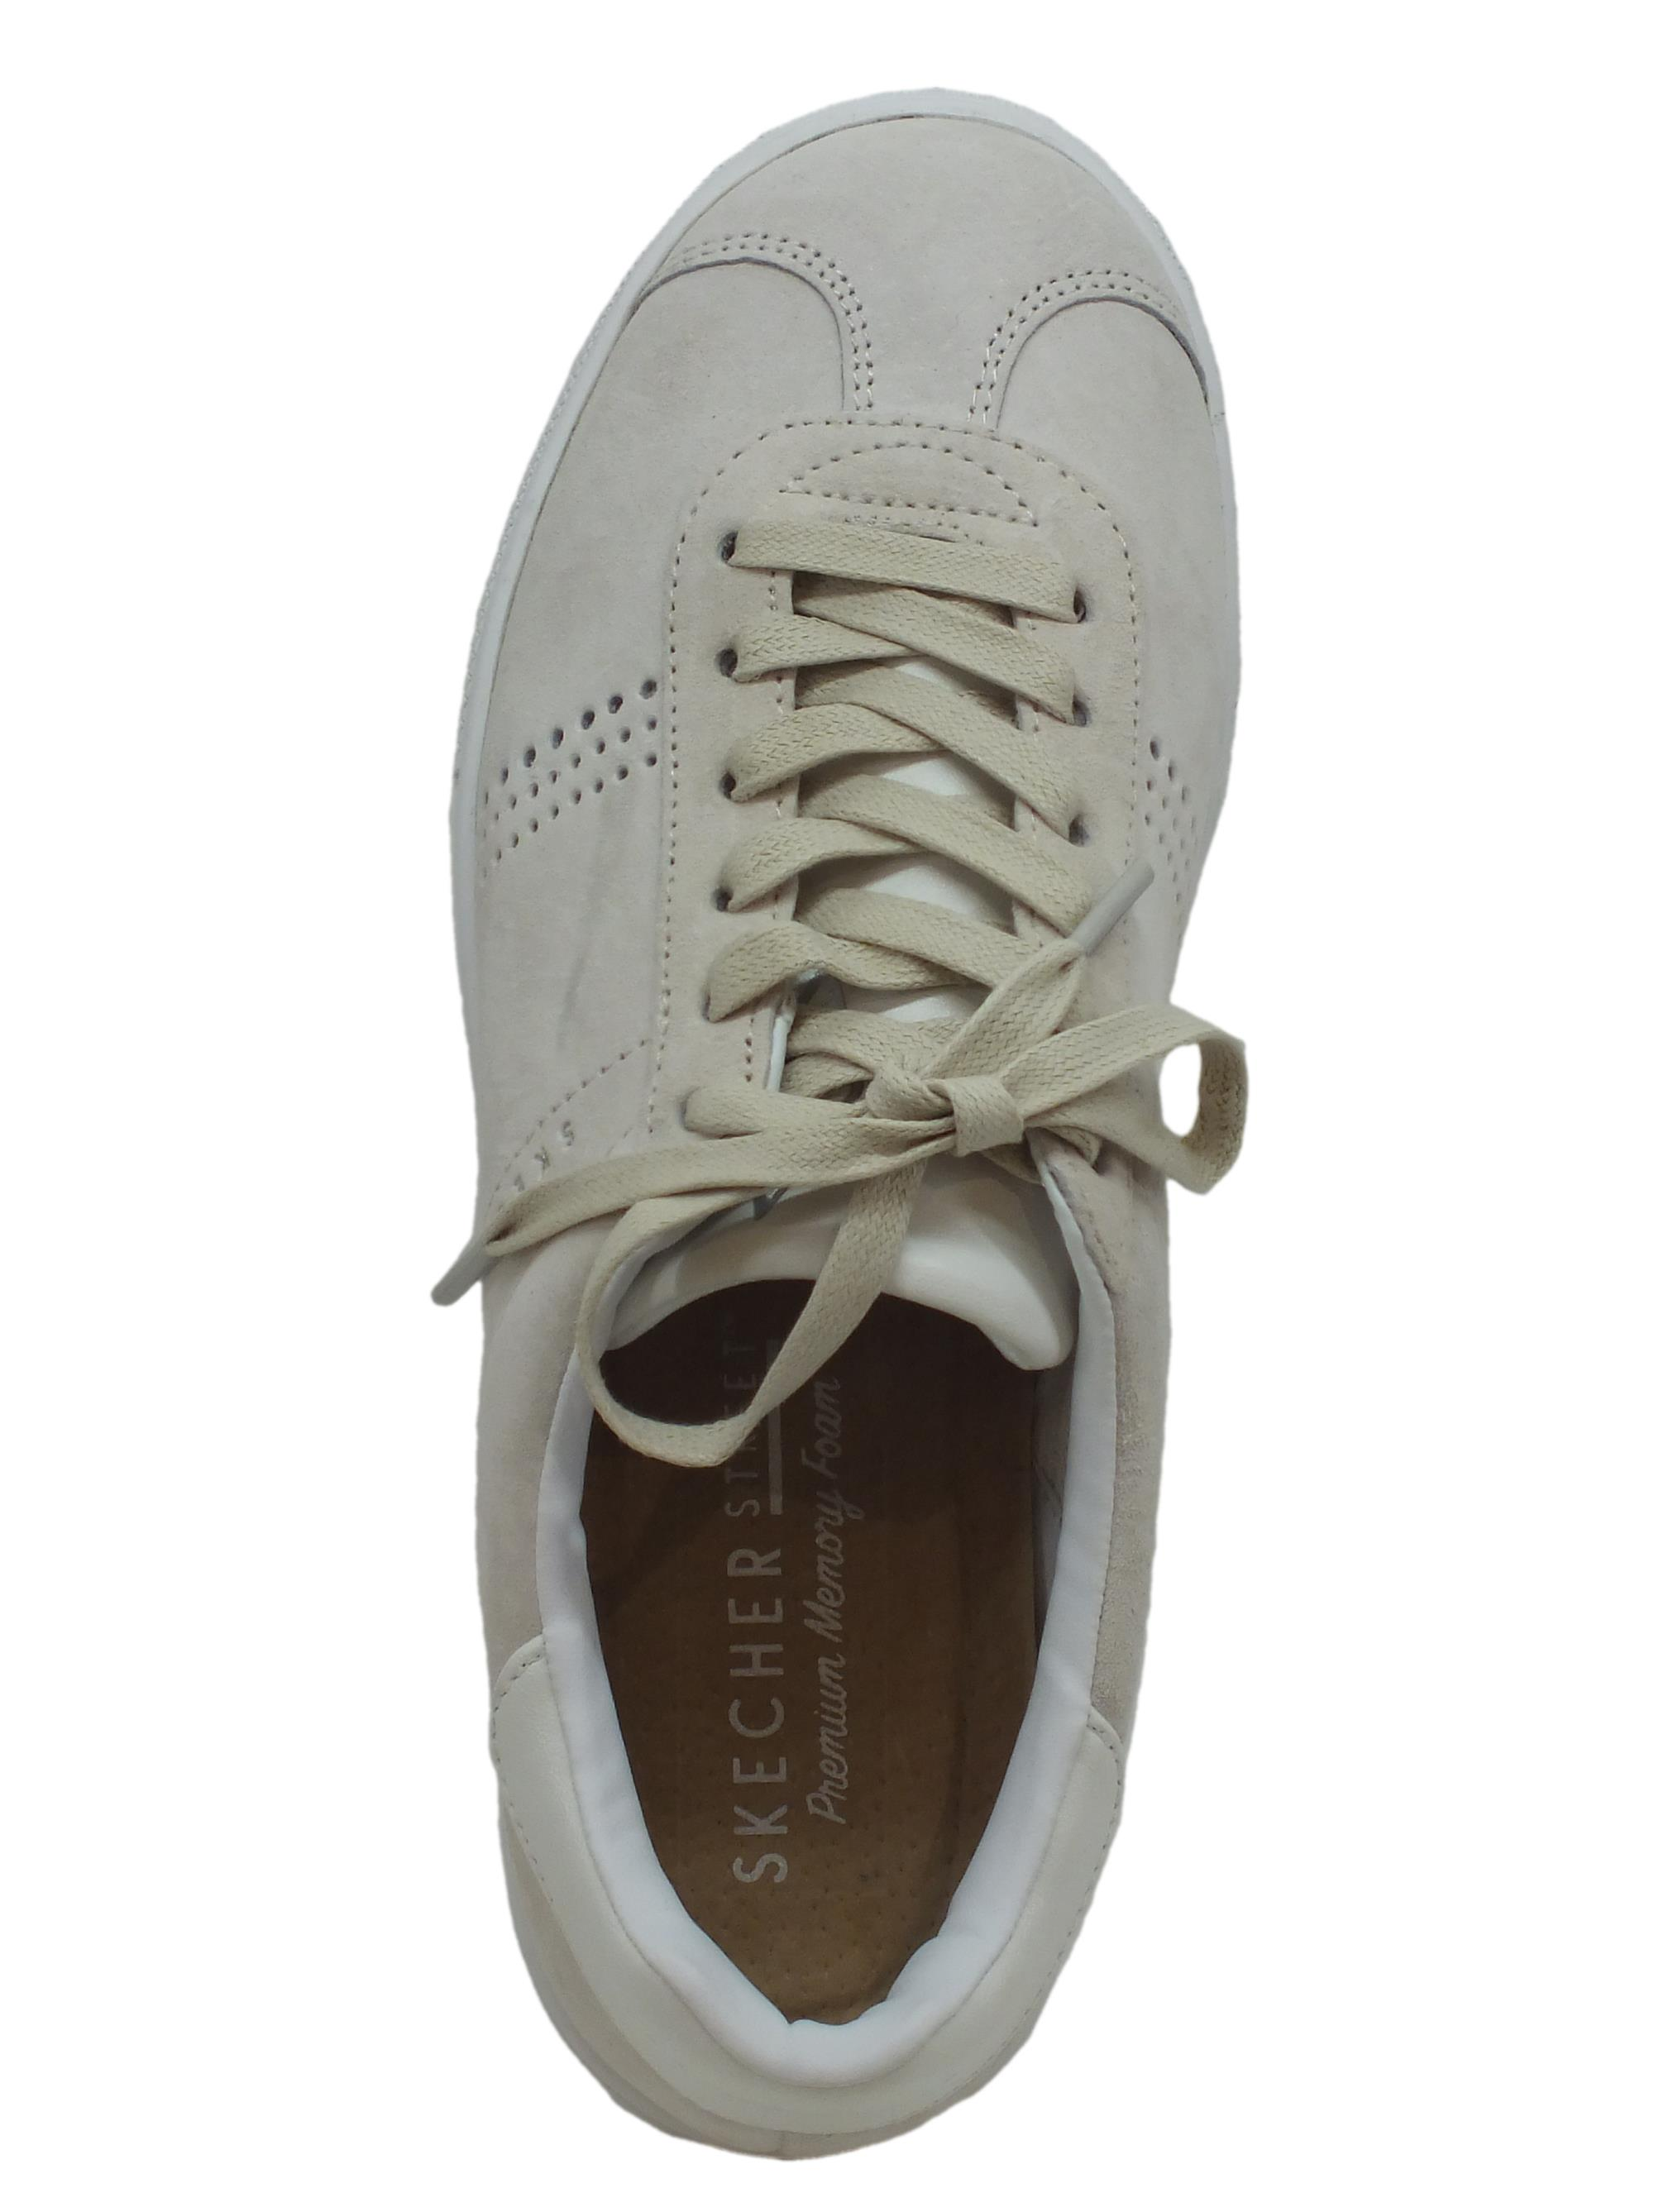 Skechers Scarpe Los Angeles per Donna Modello Tennis in